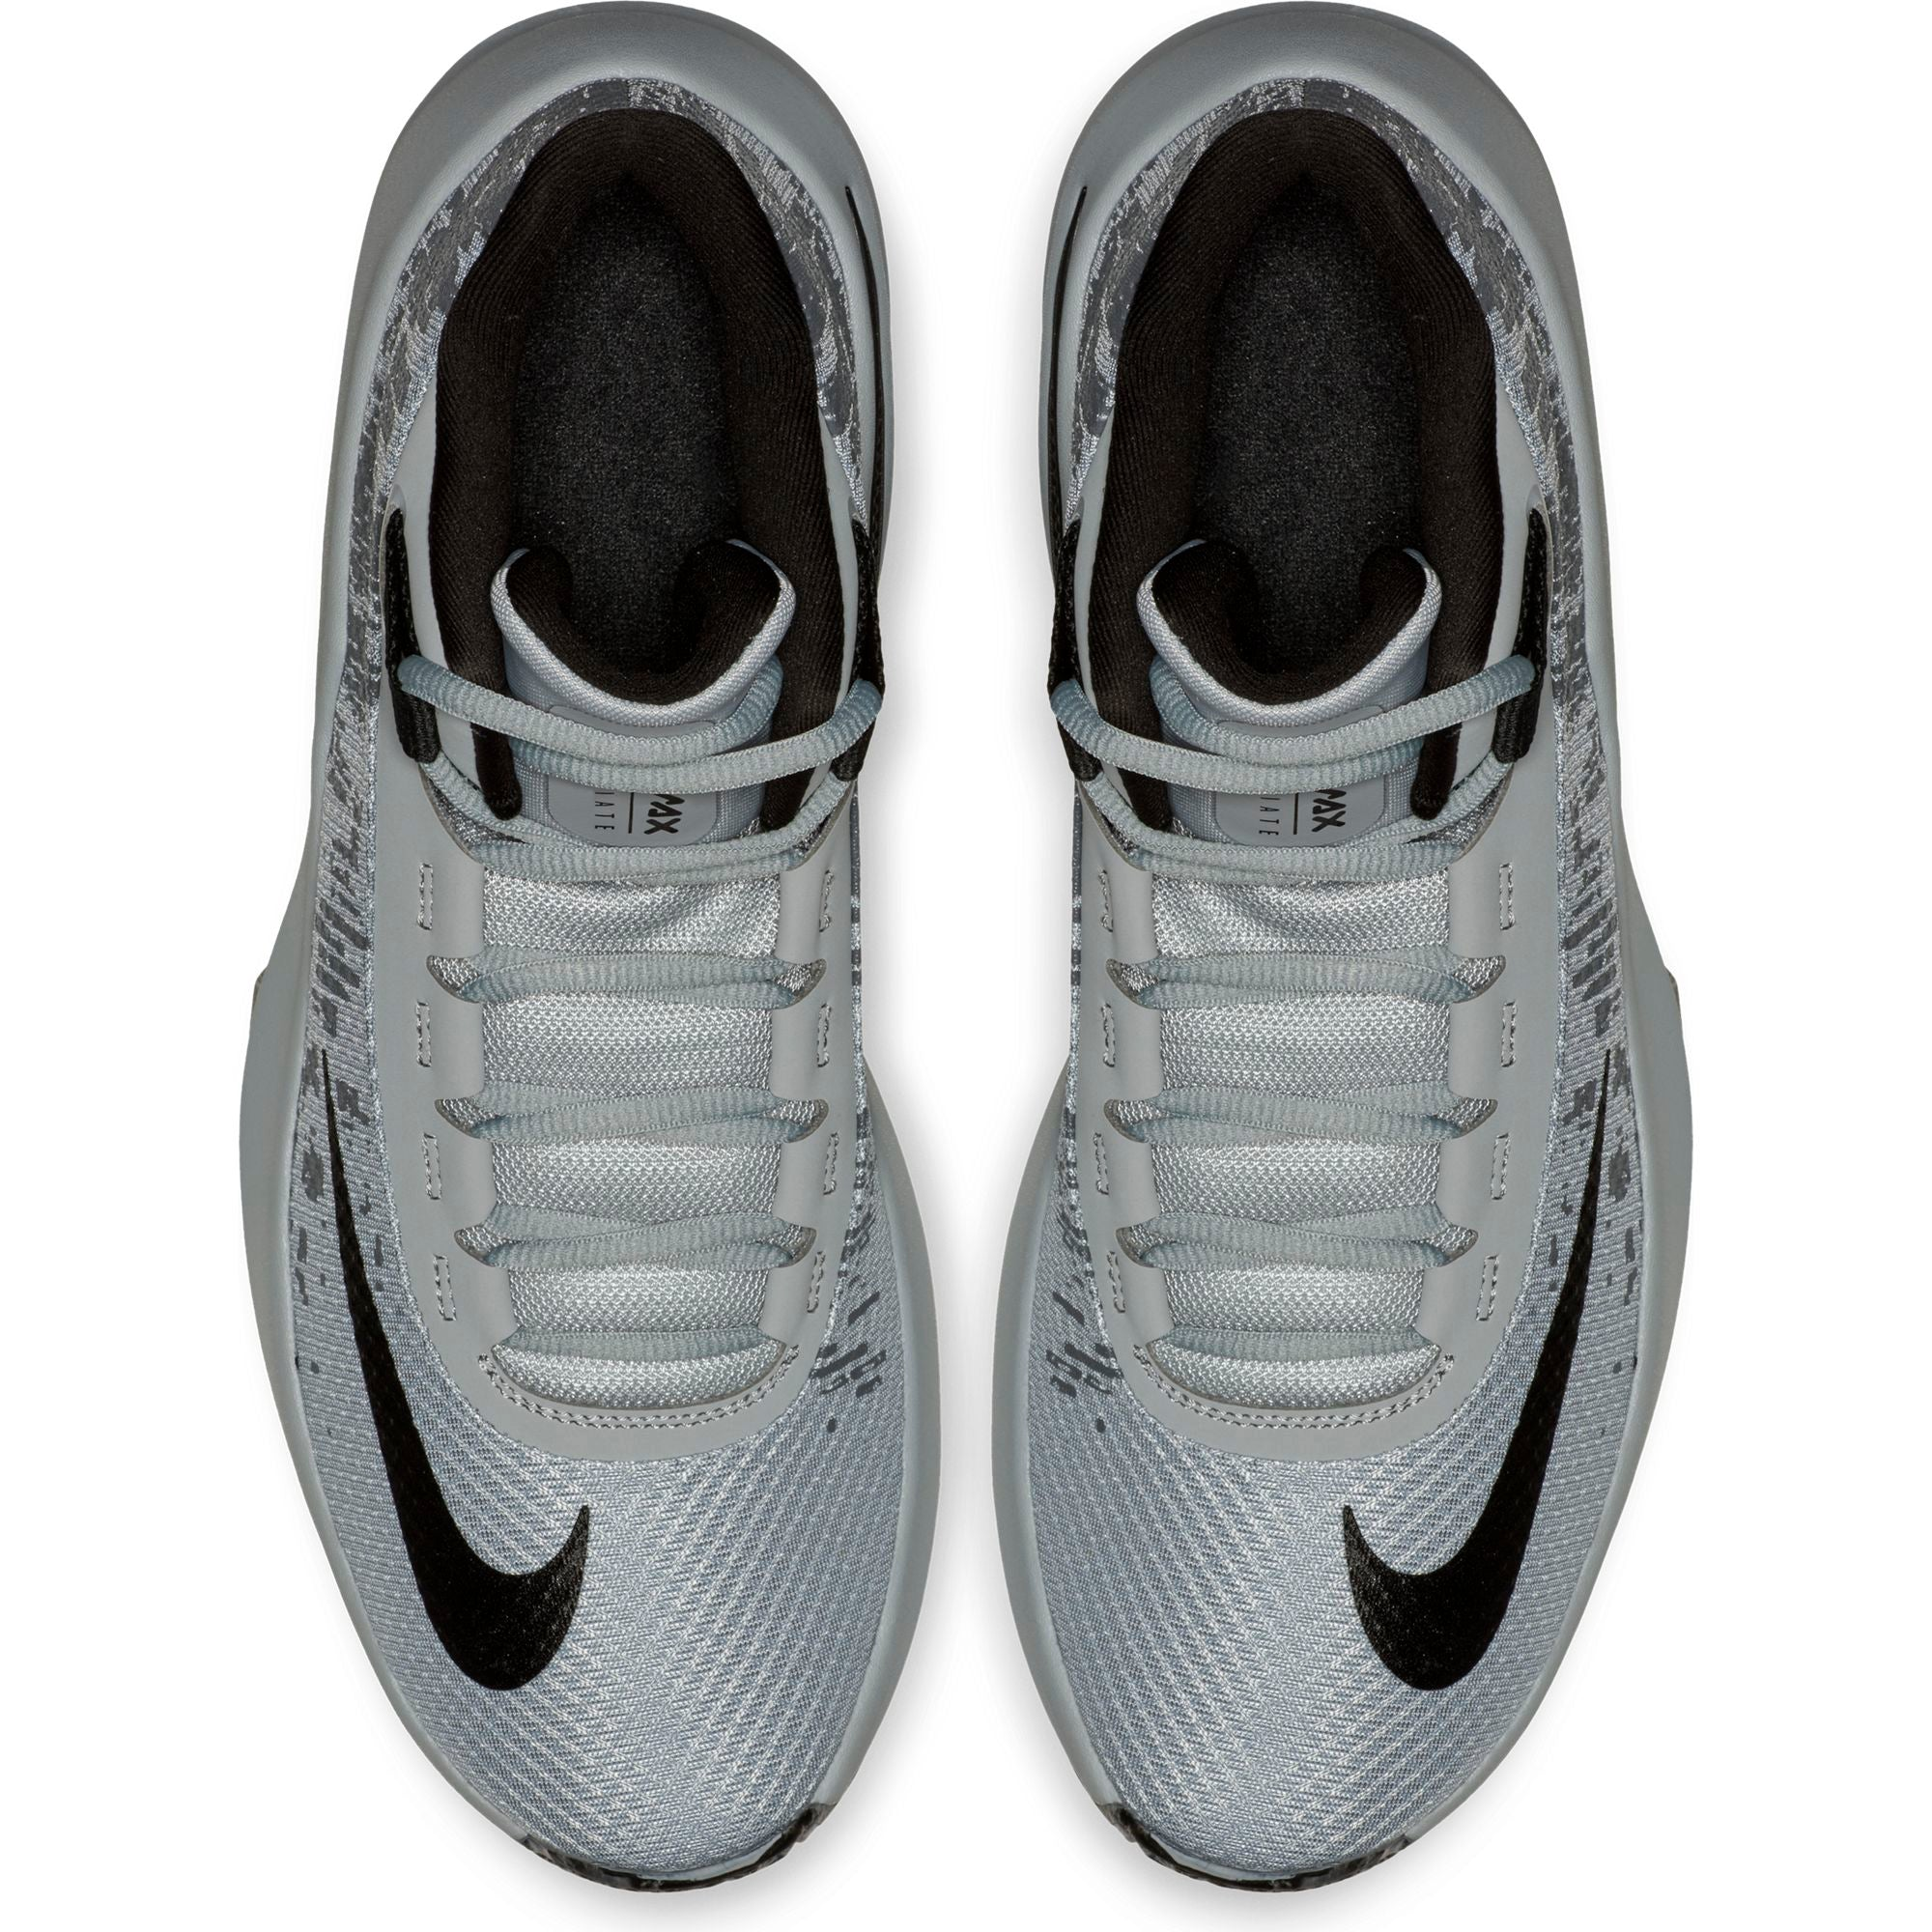 Nike Basketball Air Max Infuriate 2 Mid Boot/Shoe - Wolf Grey/Black/Dark Grey